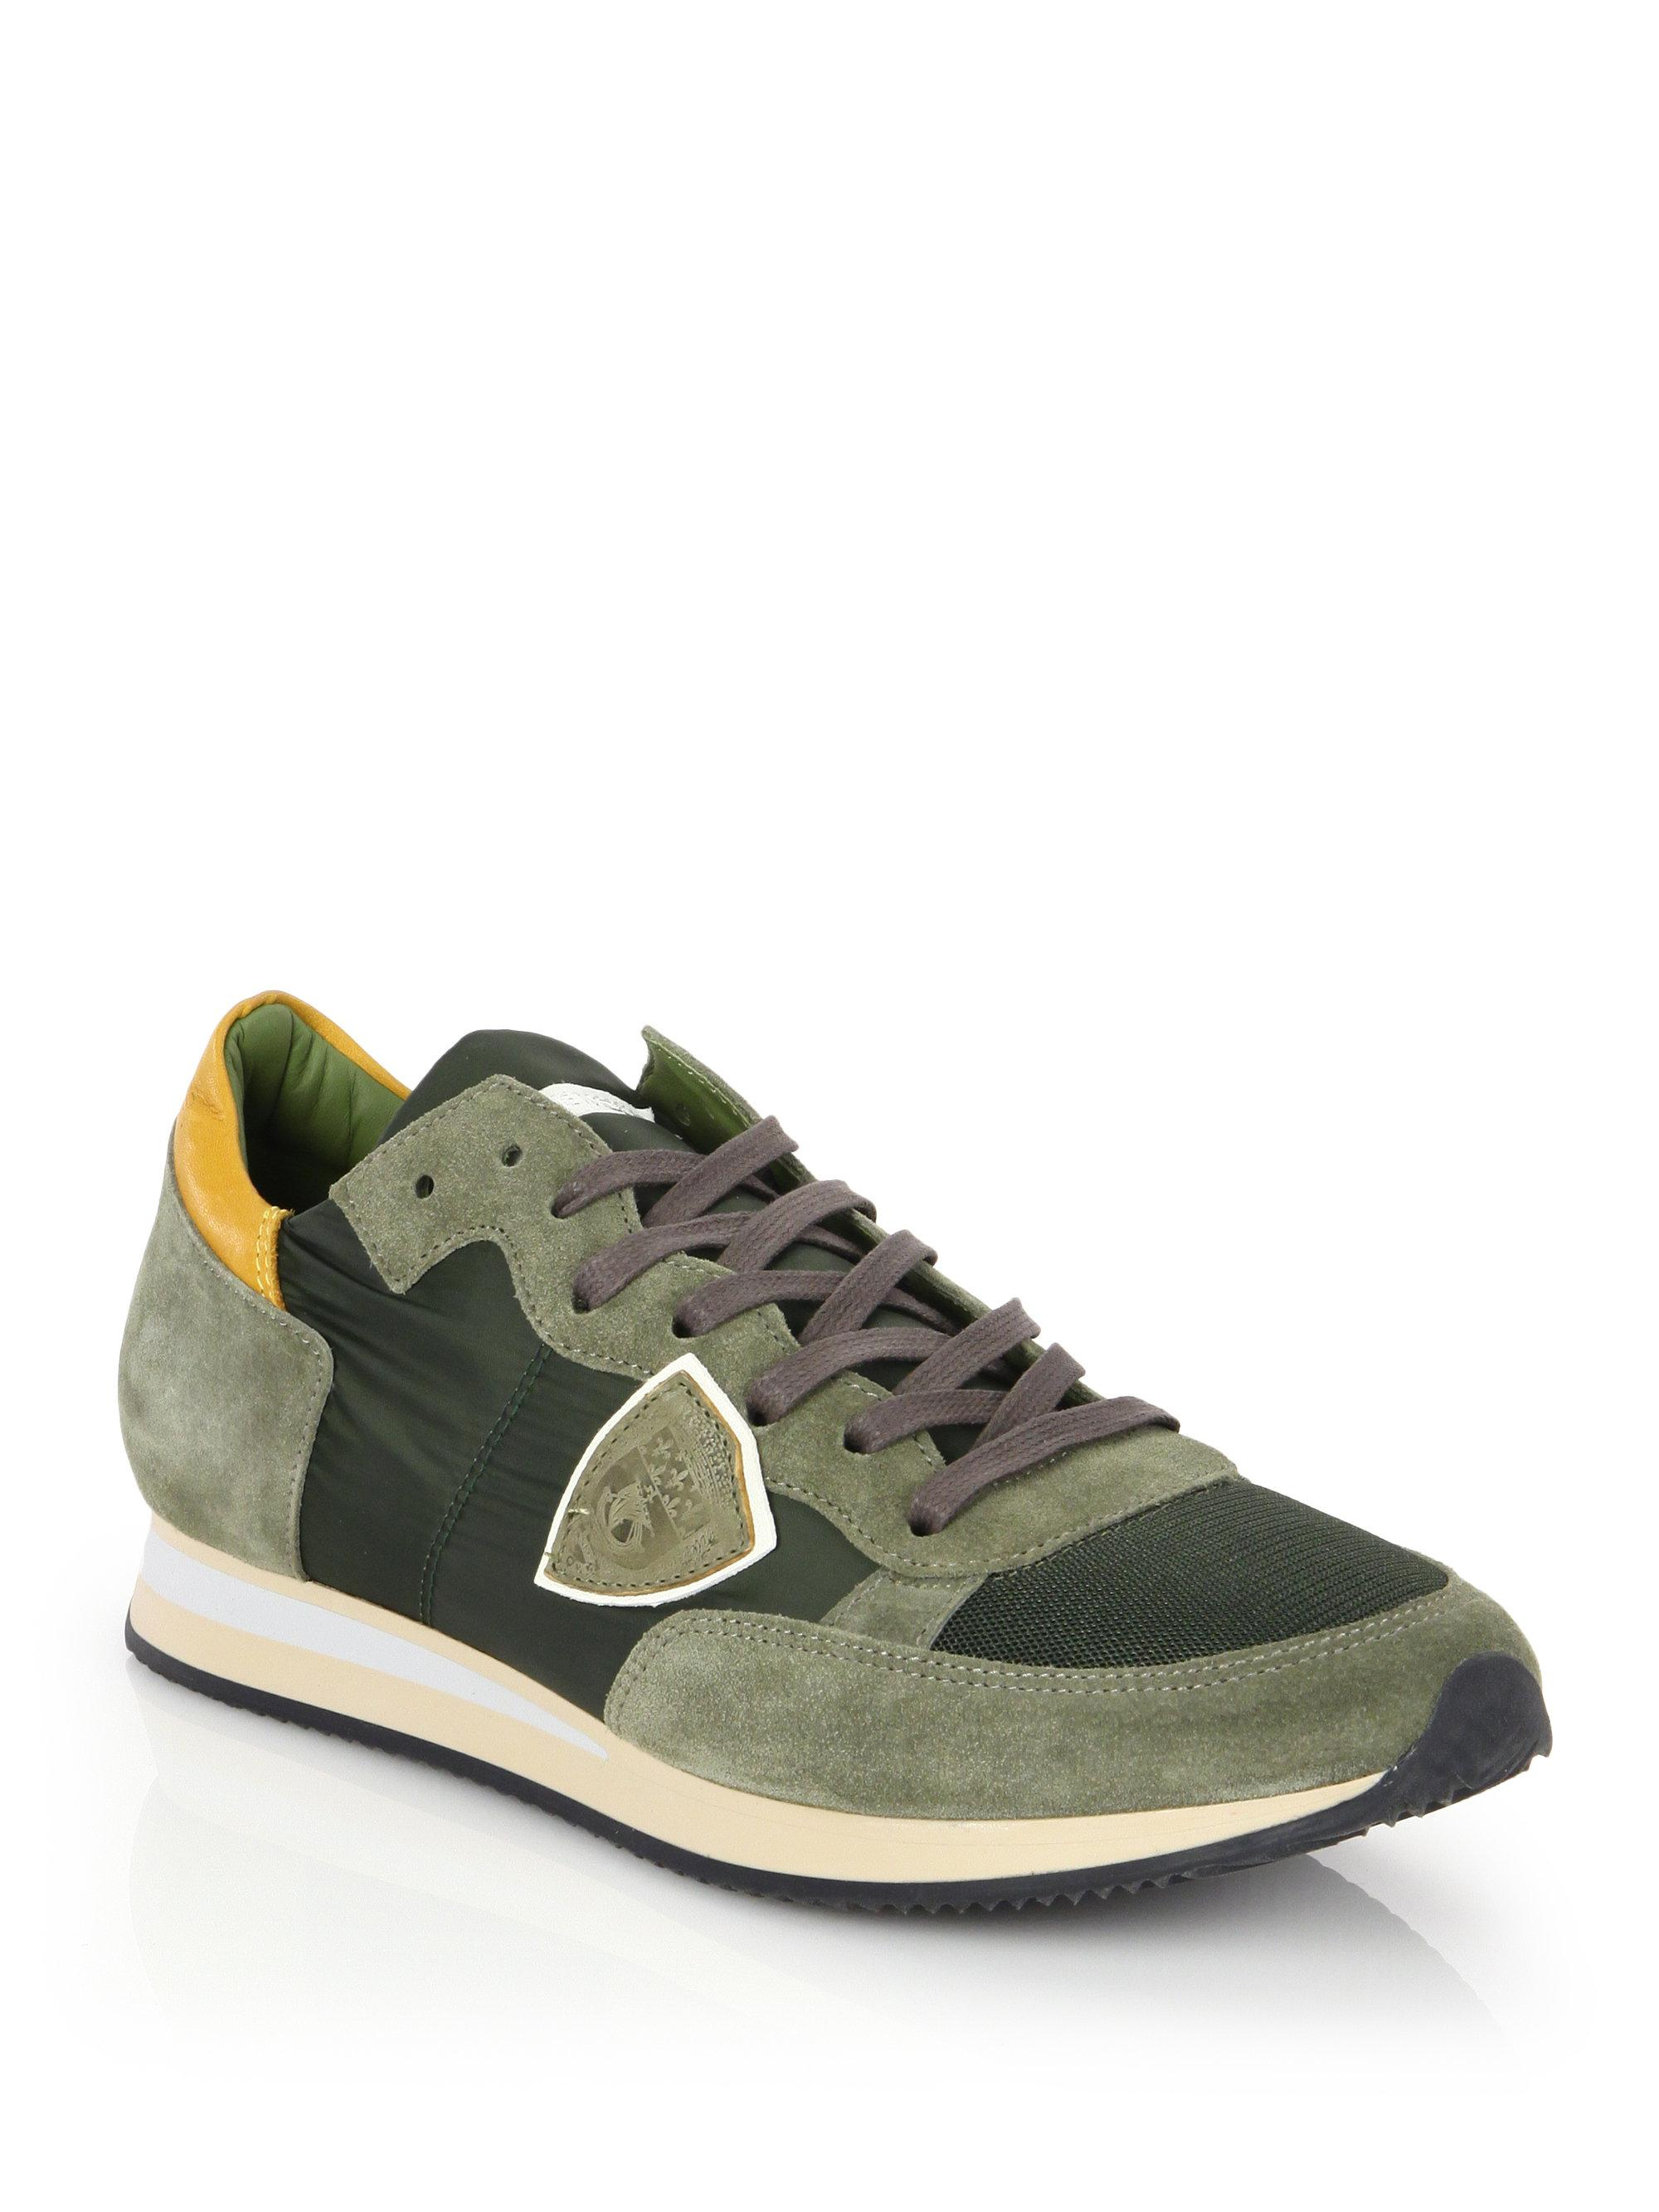 low cost ca93e b8ac8 philippe-model-green-Tropez-Lace-up-Leather-Low-top-Sneakers.jpeg